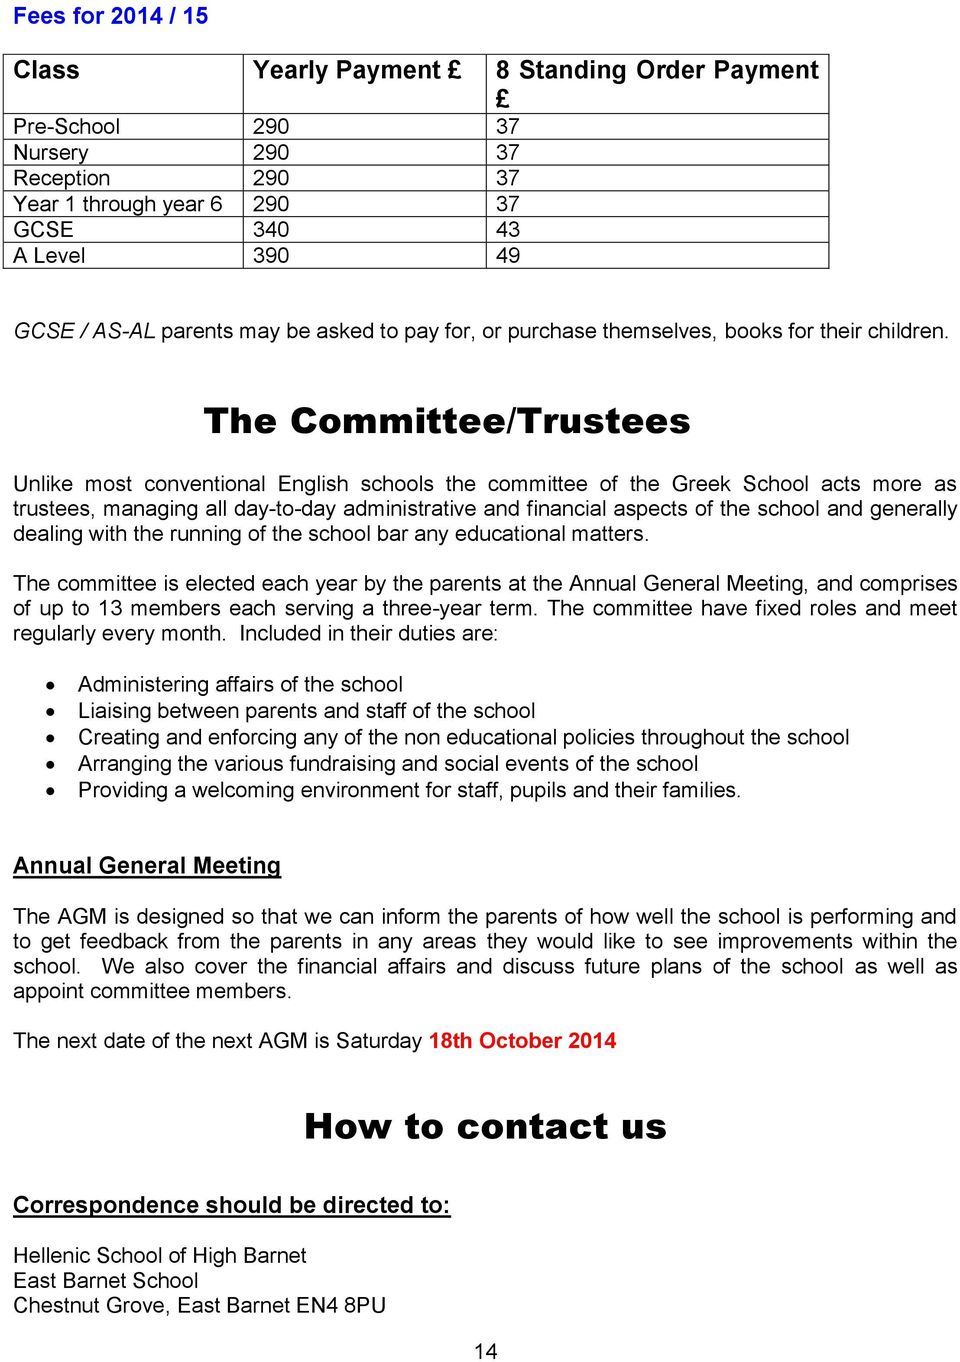 The Committee/Trustees Unlike most conventional English schools the committee of the Greek School acts more as trustees, managing all day-to-day administrative and financial aspects of the school and